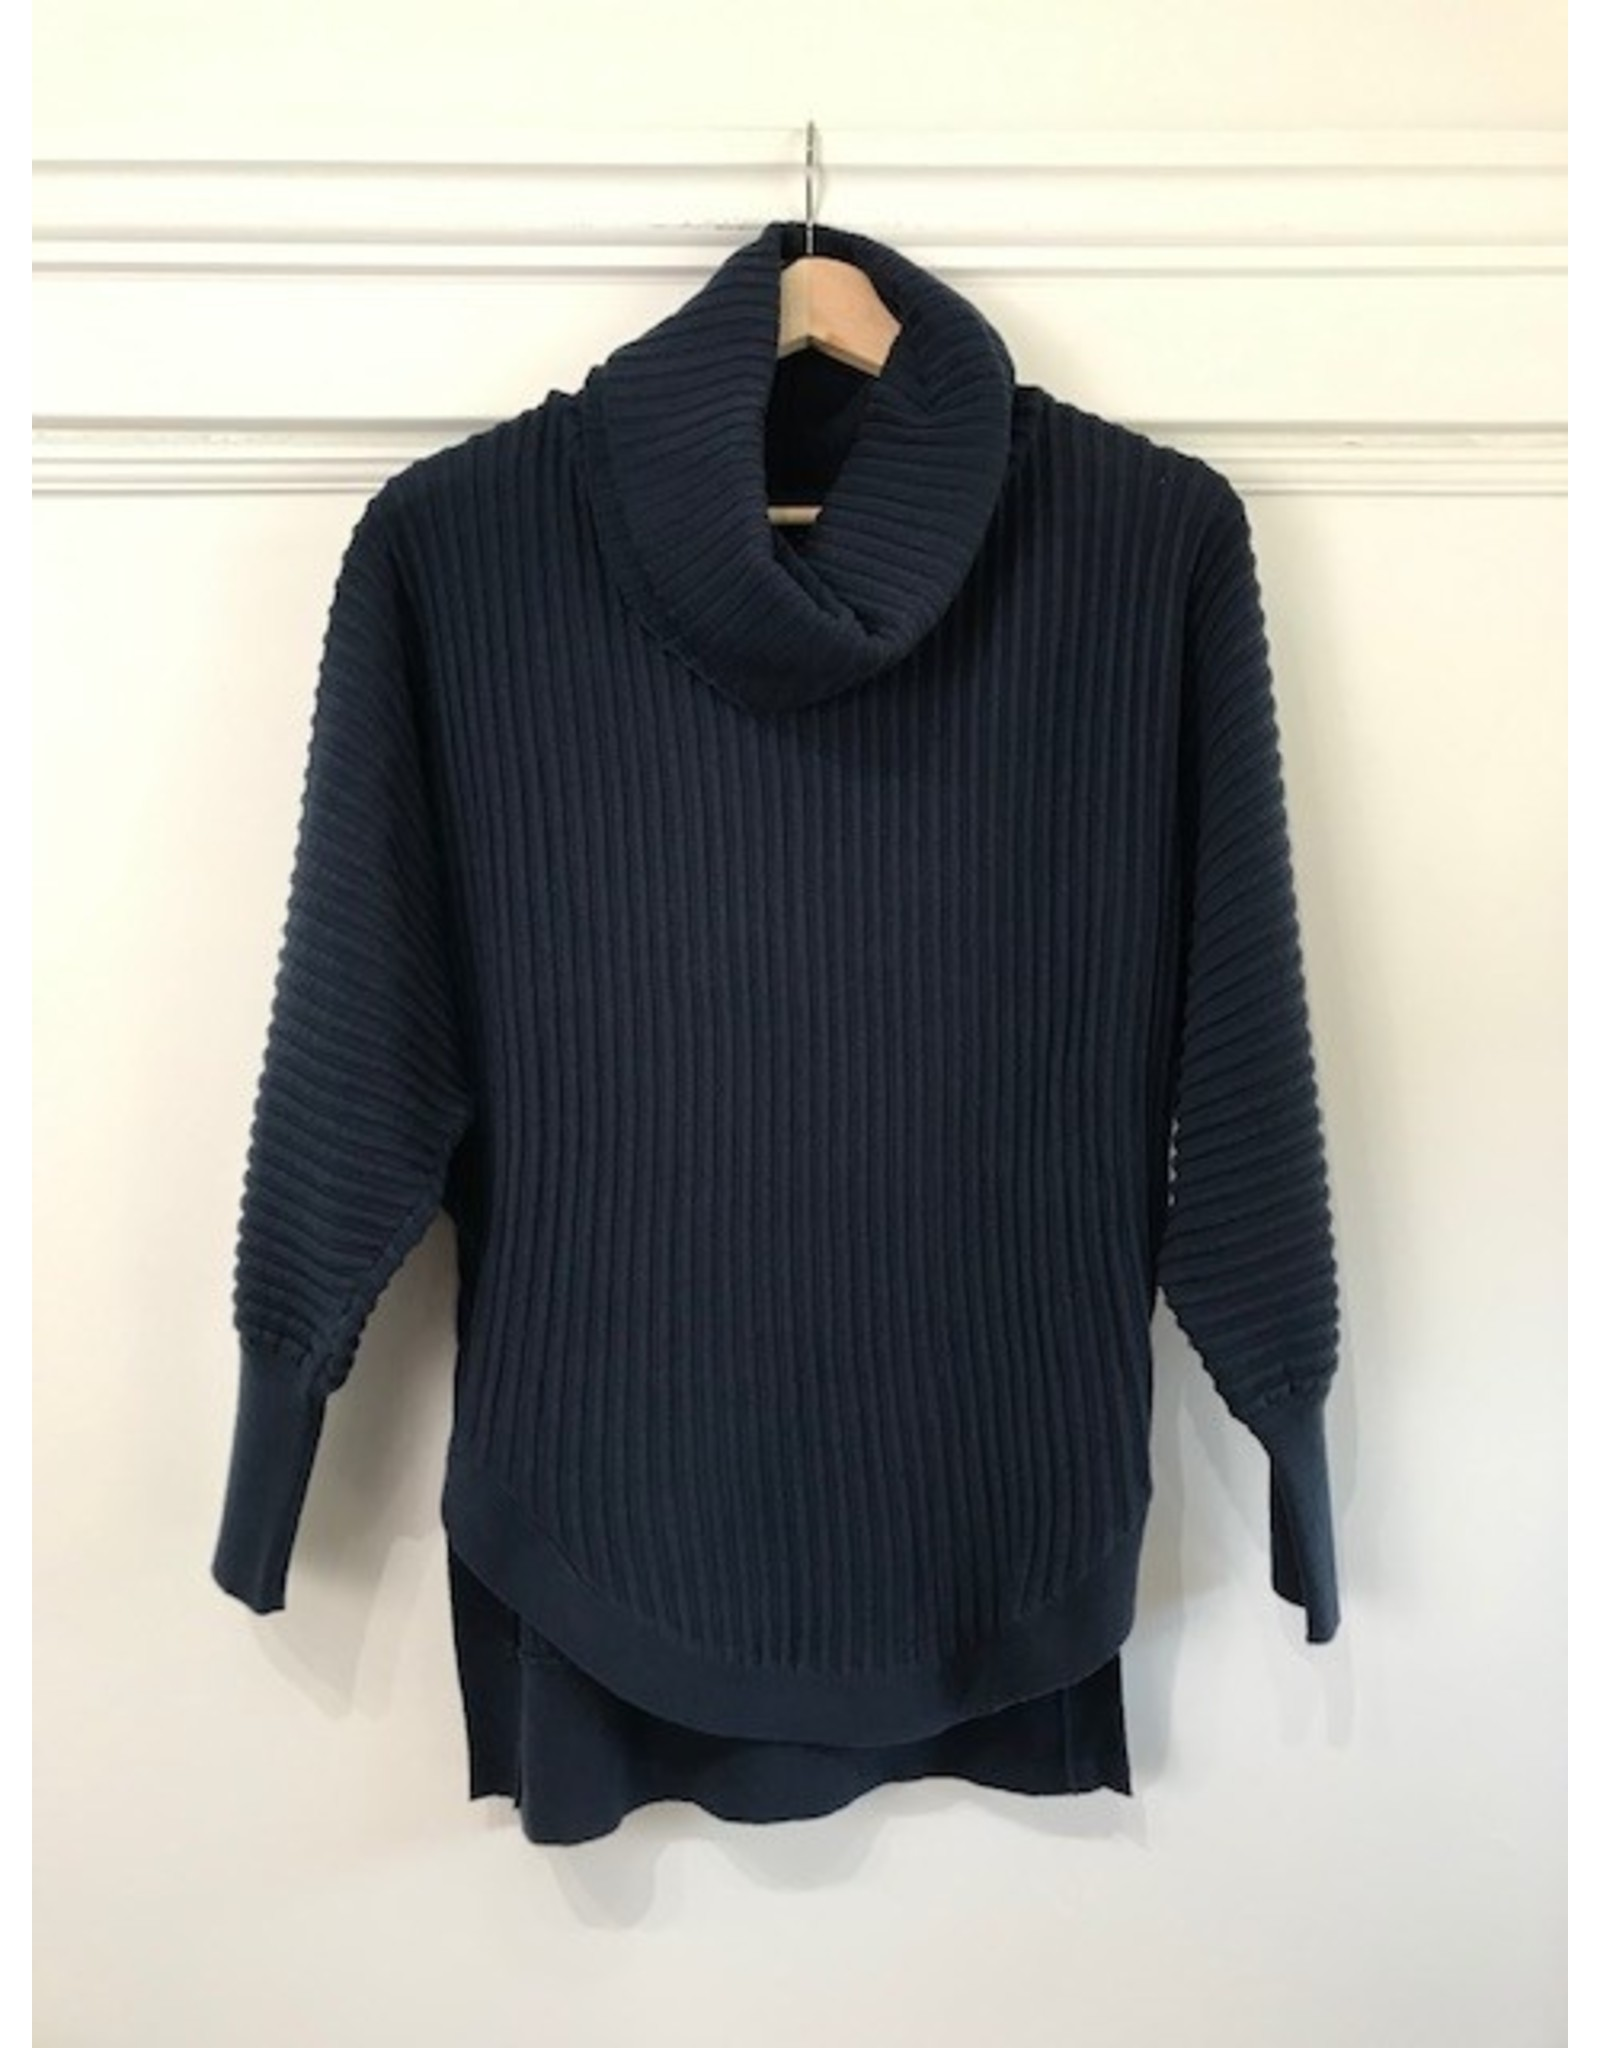 Papillon Papillon - Ribbed sweater with cowl neck (navy)